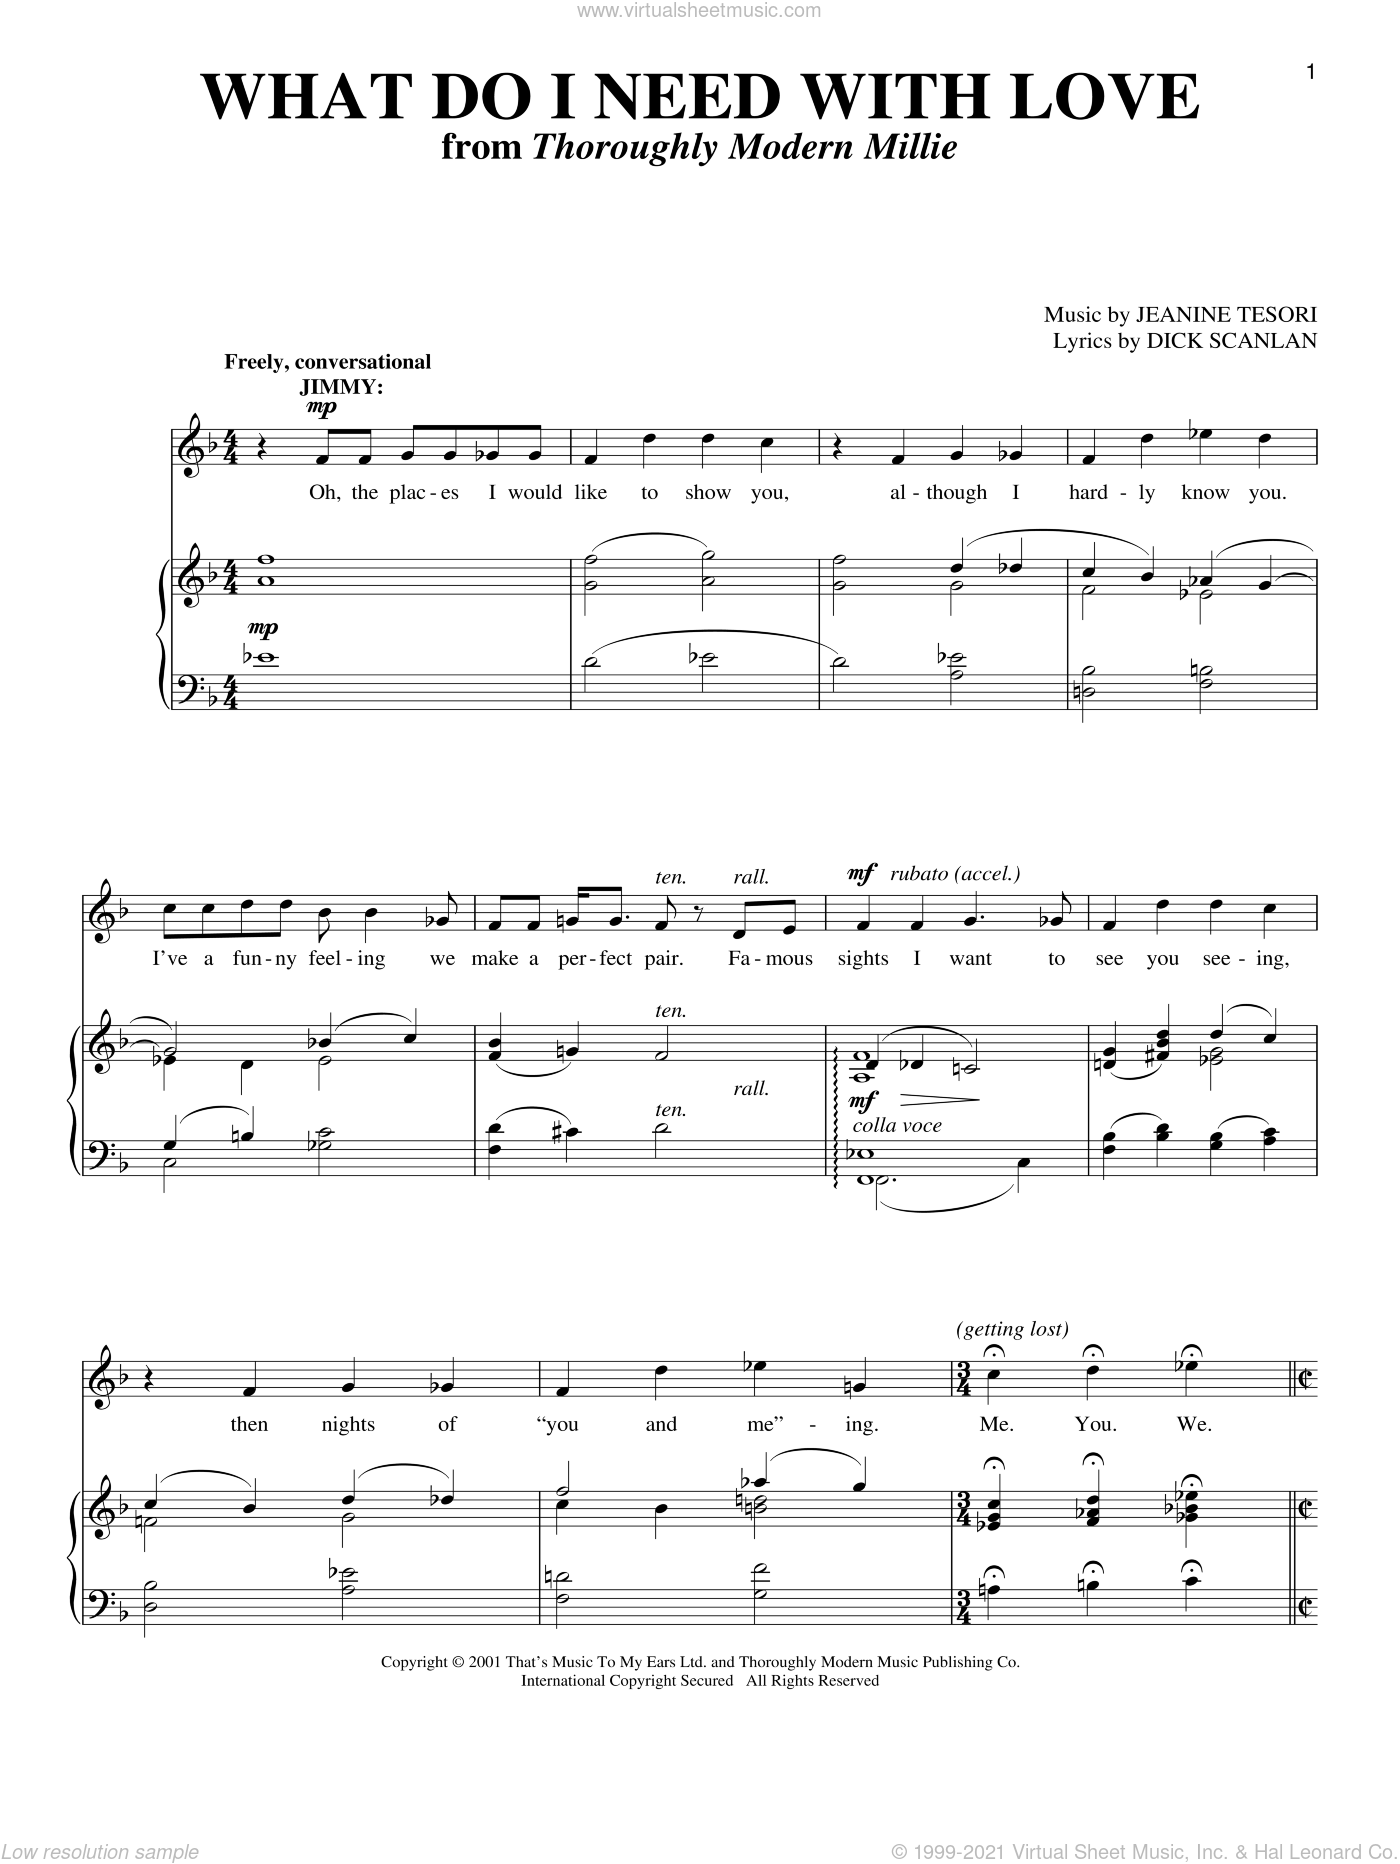 What Do I Need With Love sheet music for voice and piano by Jeanine Tesori